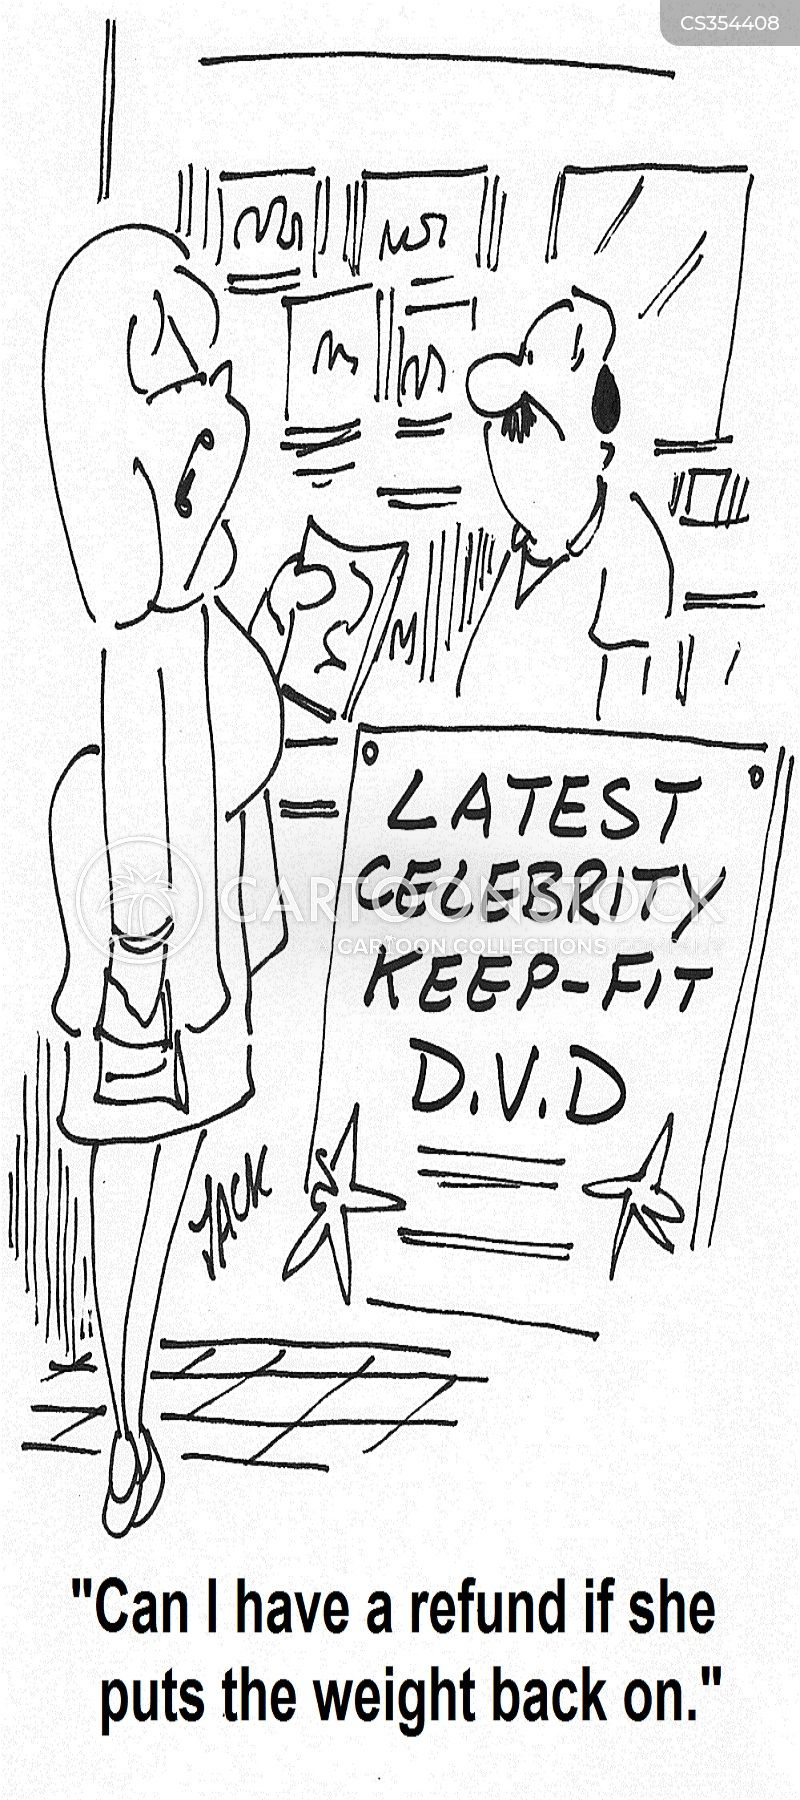 exercise dvds cartoon